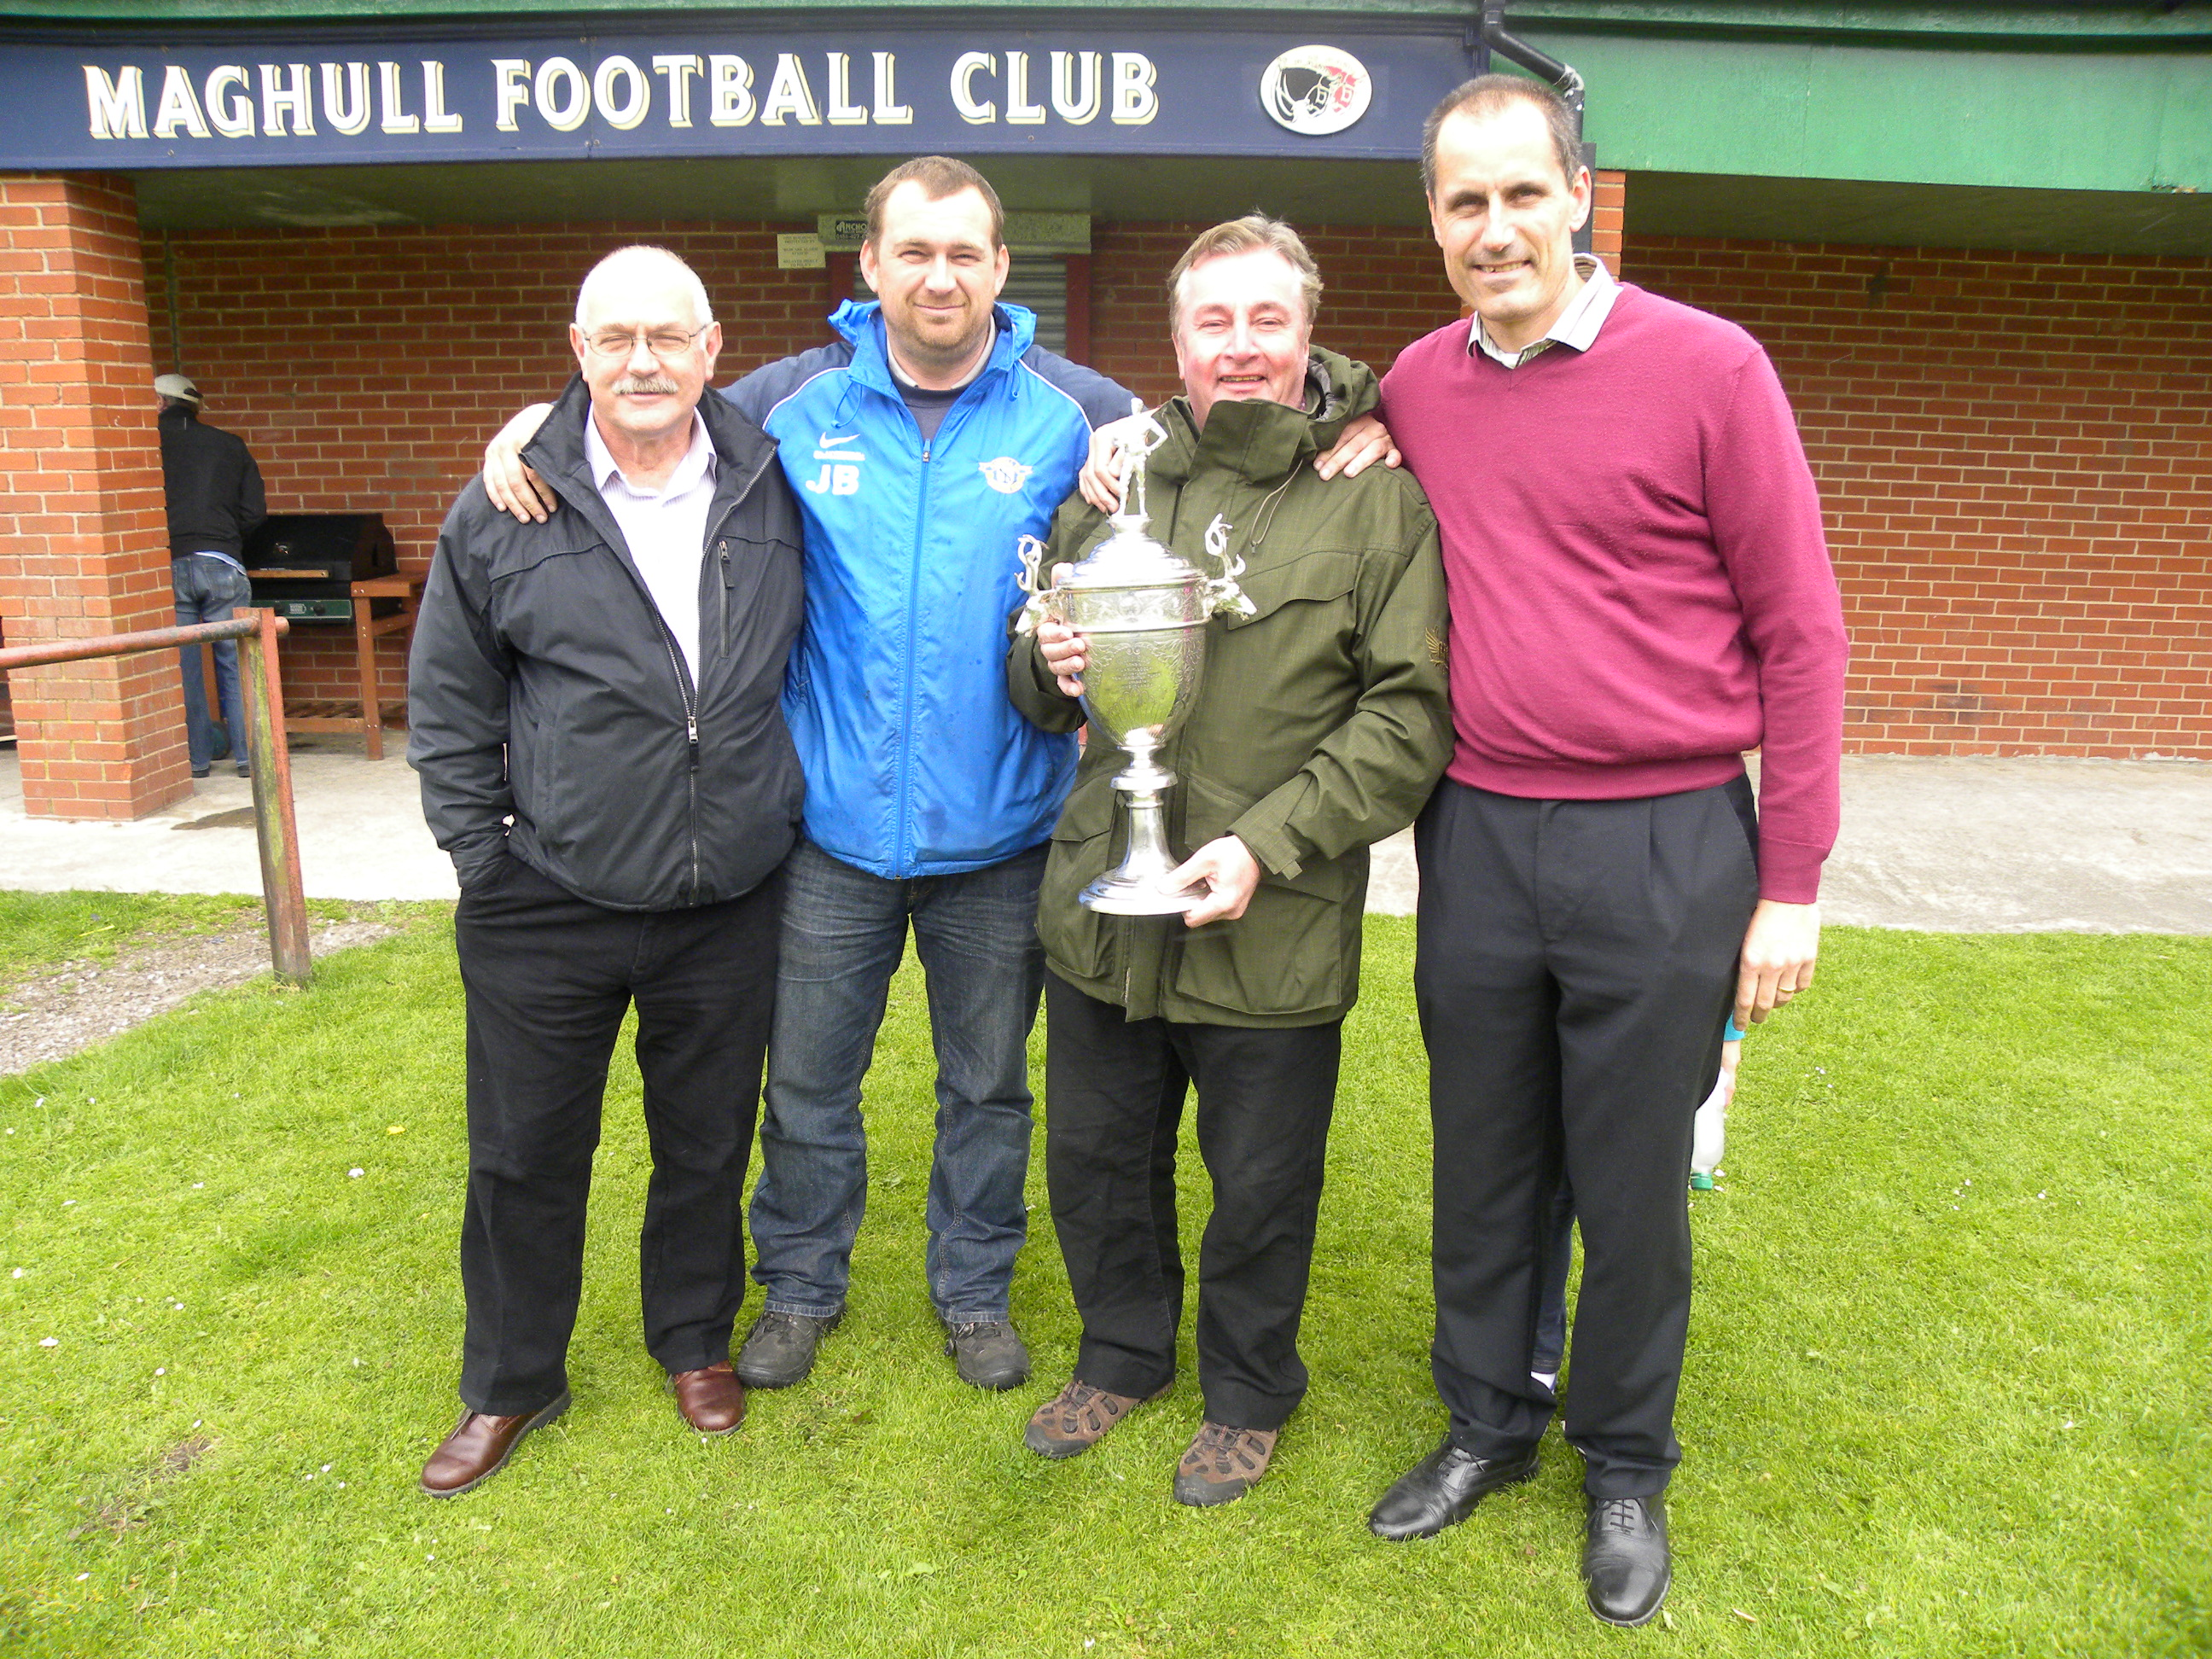 New maghull Town Councillor Maurice Byrne and Sudell Ward's Cllr Patrick McKinley with Bill Esterson MP and Maghull FC 1st team manager John Brownrigg.